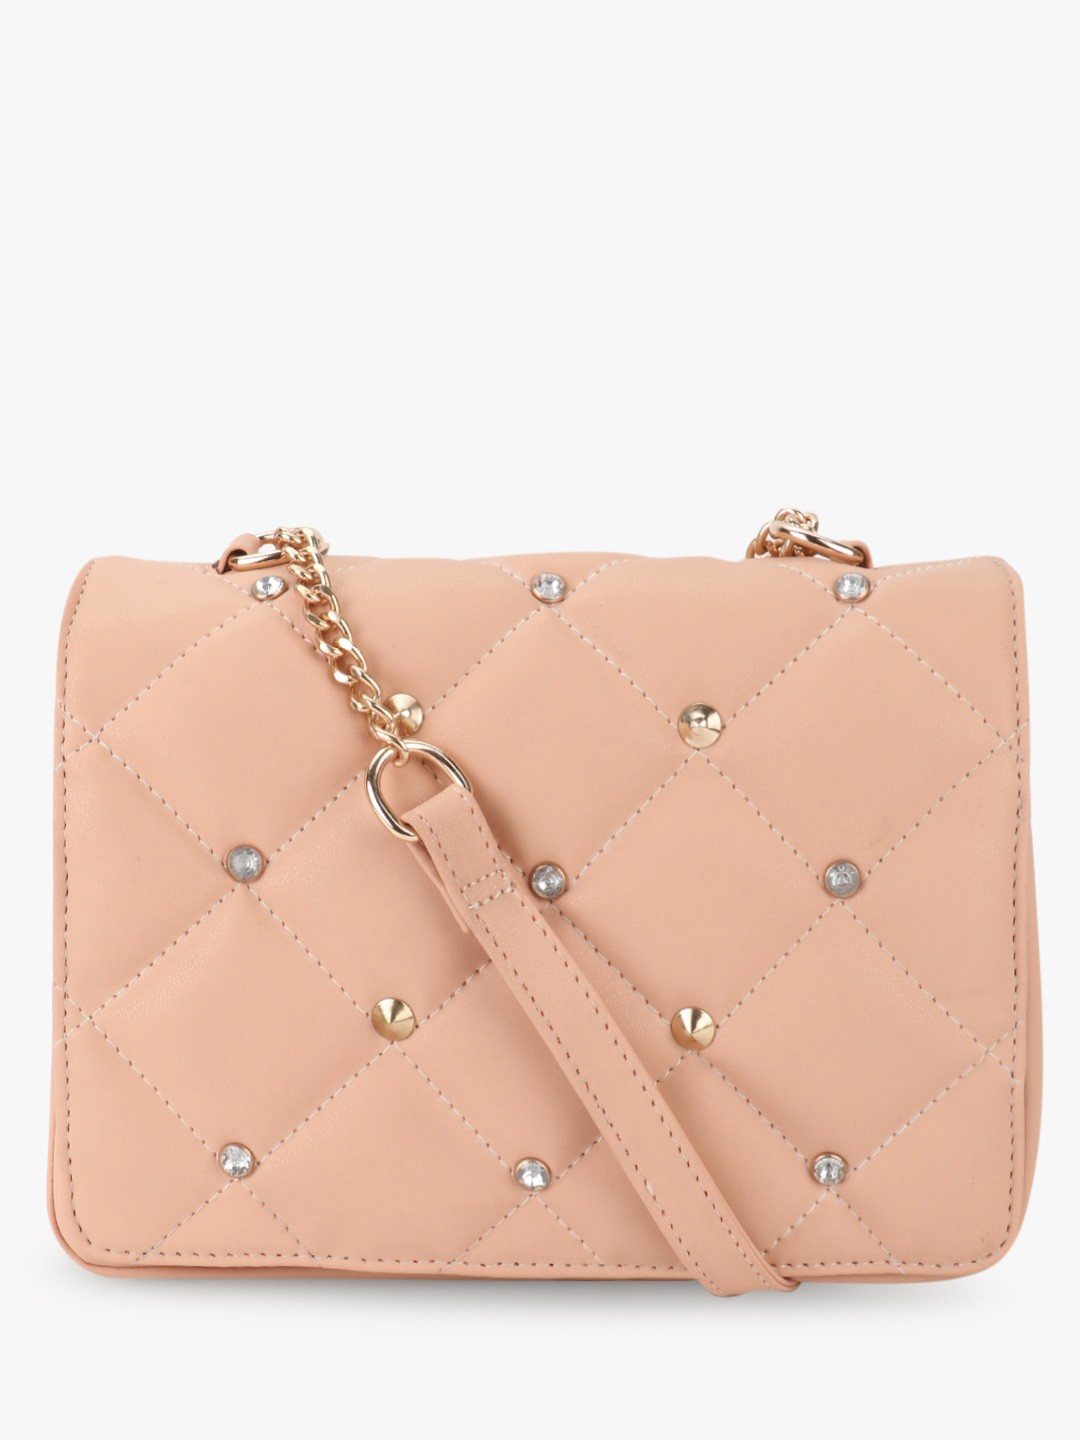 Paris Belle Nude Slingbag With Cushion Detail And Studs 1